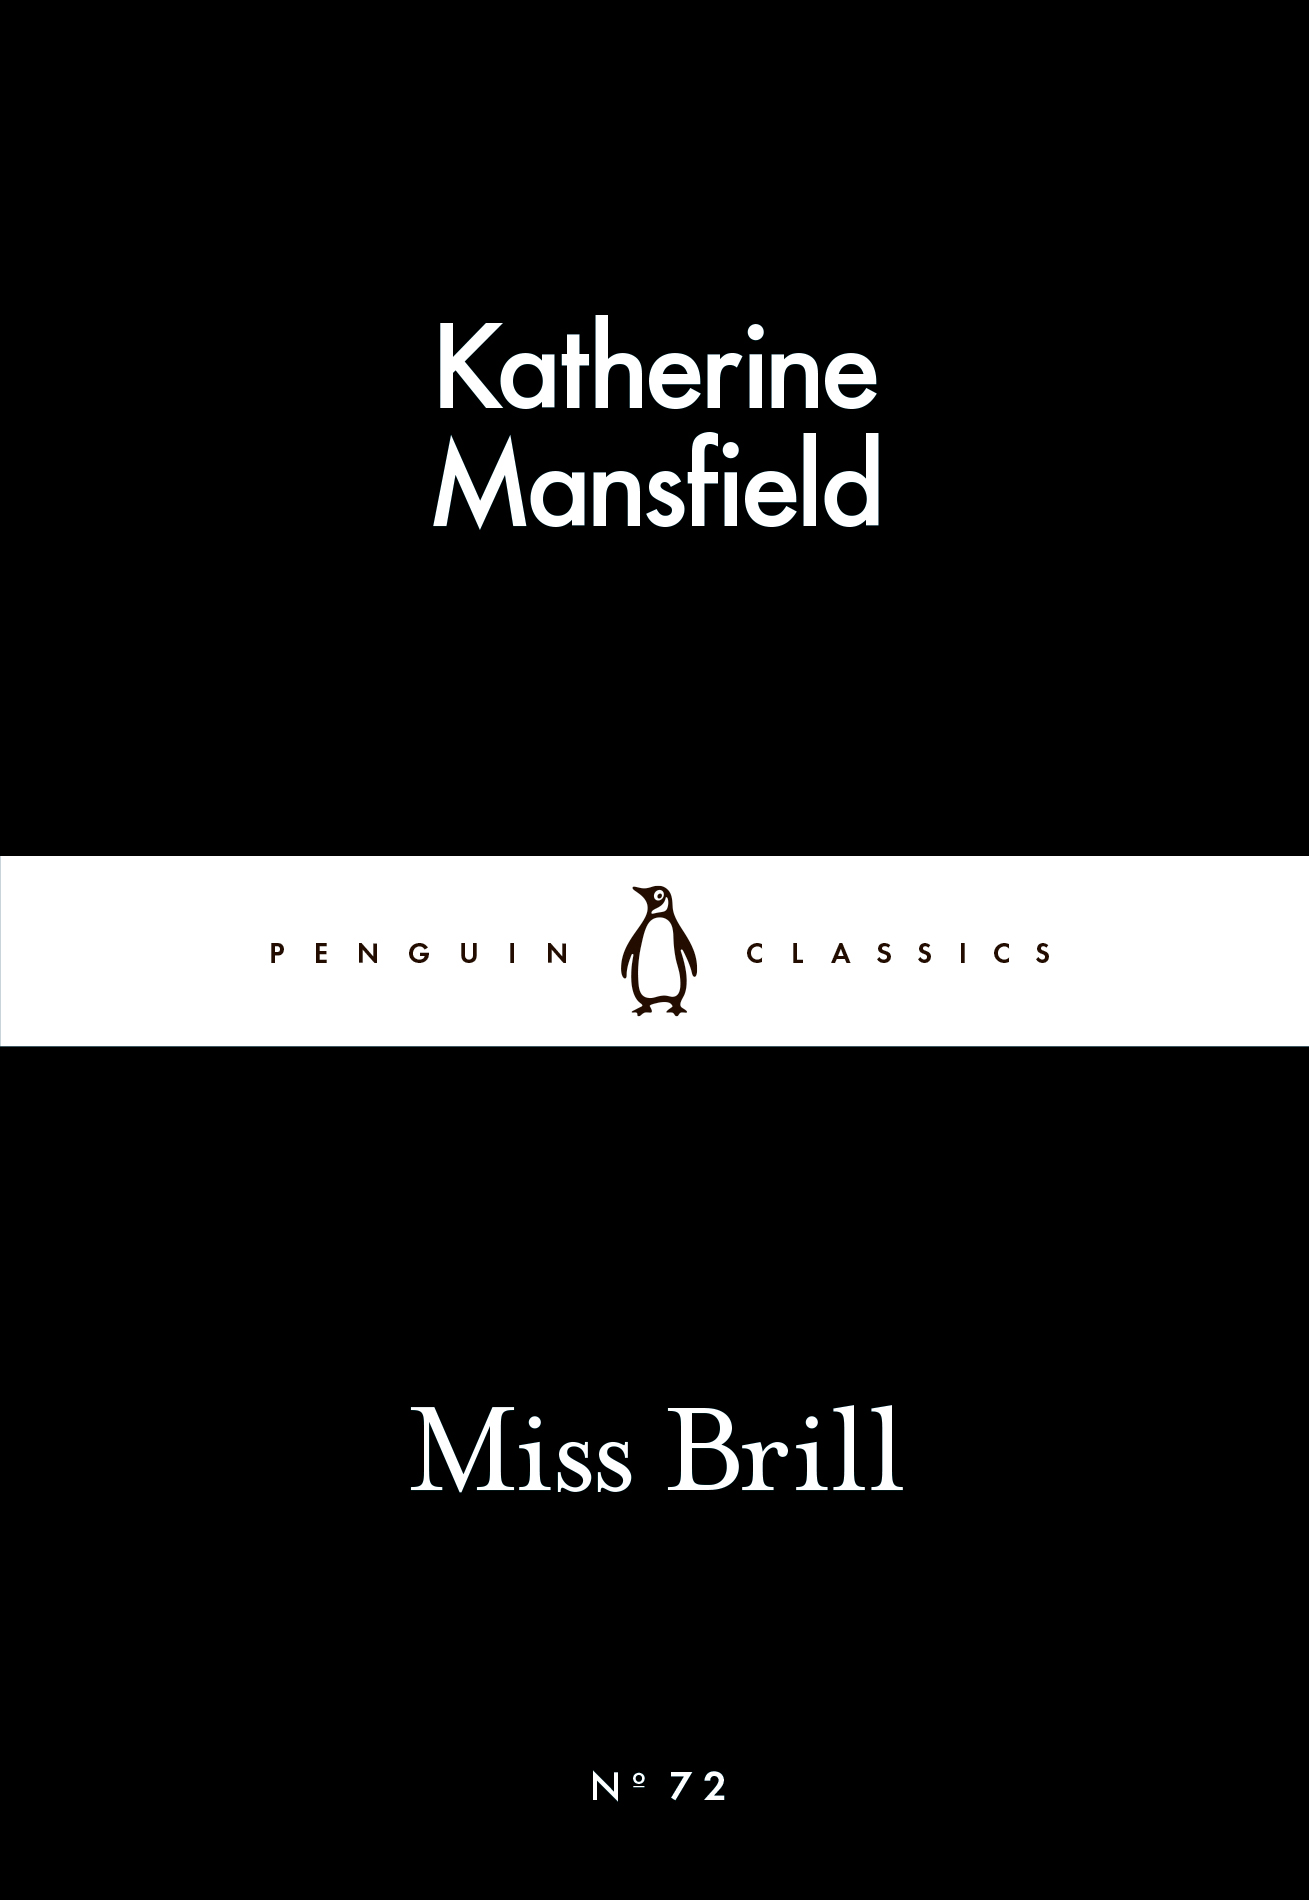 katherine mansfield miss brill essays Miss brill is a short story written by katherine mansfield and it was published in a collection of stories called the garden party in 1922 the story is about a woman who goes to her usual sunday afternoon walk on jardins publiques and what happened there with her that day.